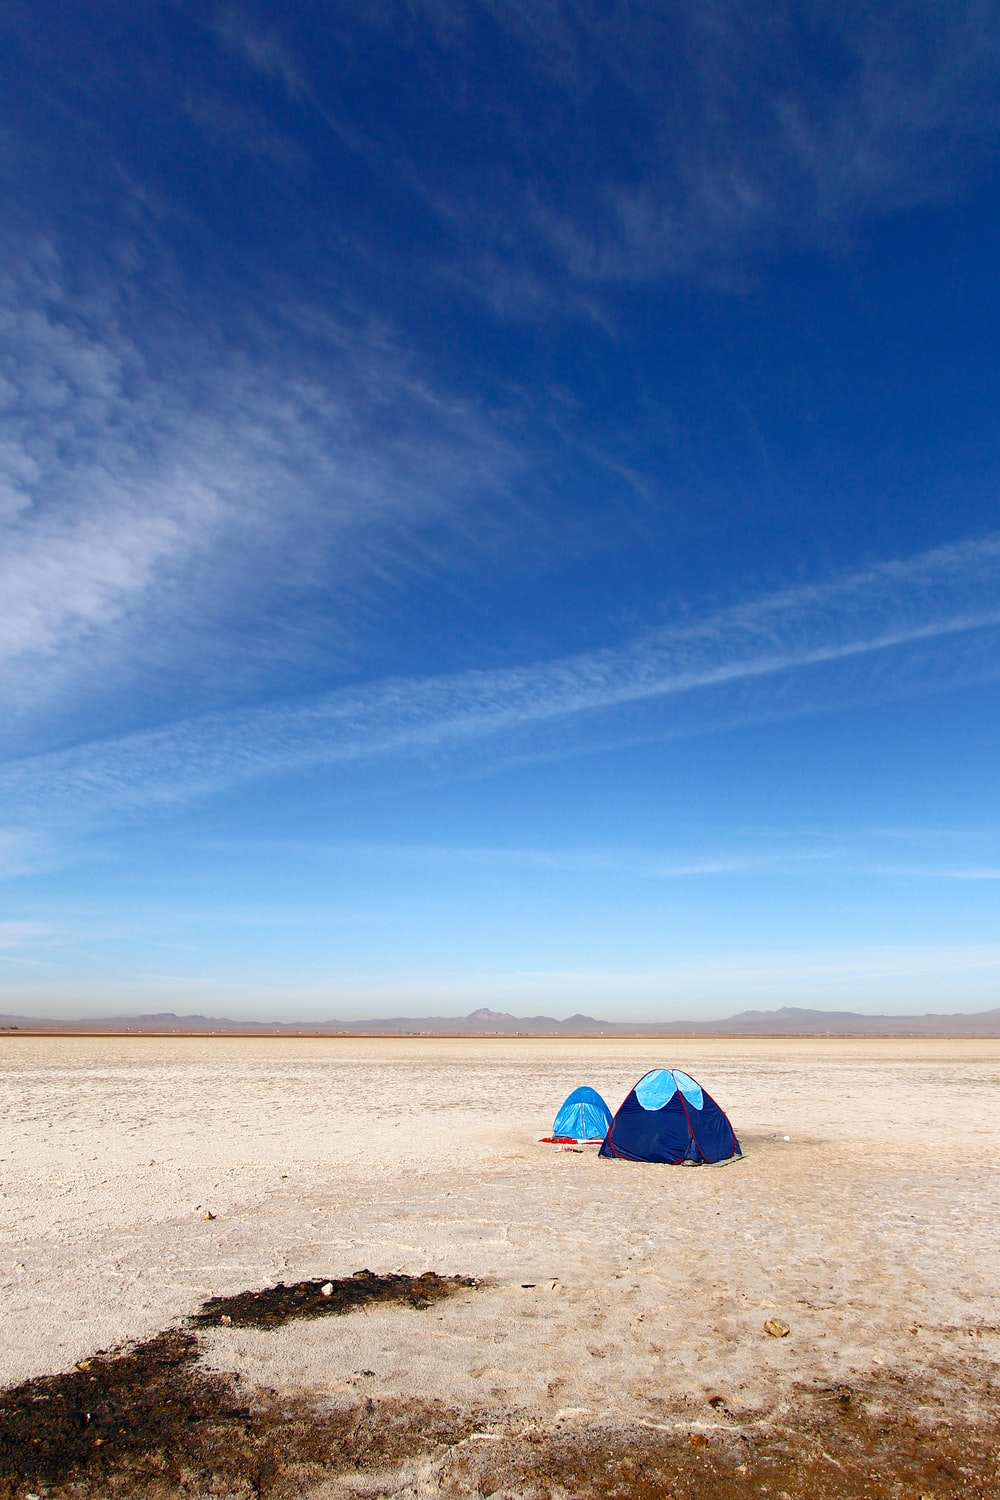 blue and white tent on brown sand under blue sky during daytime